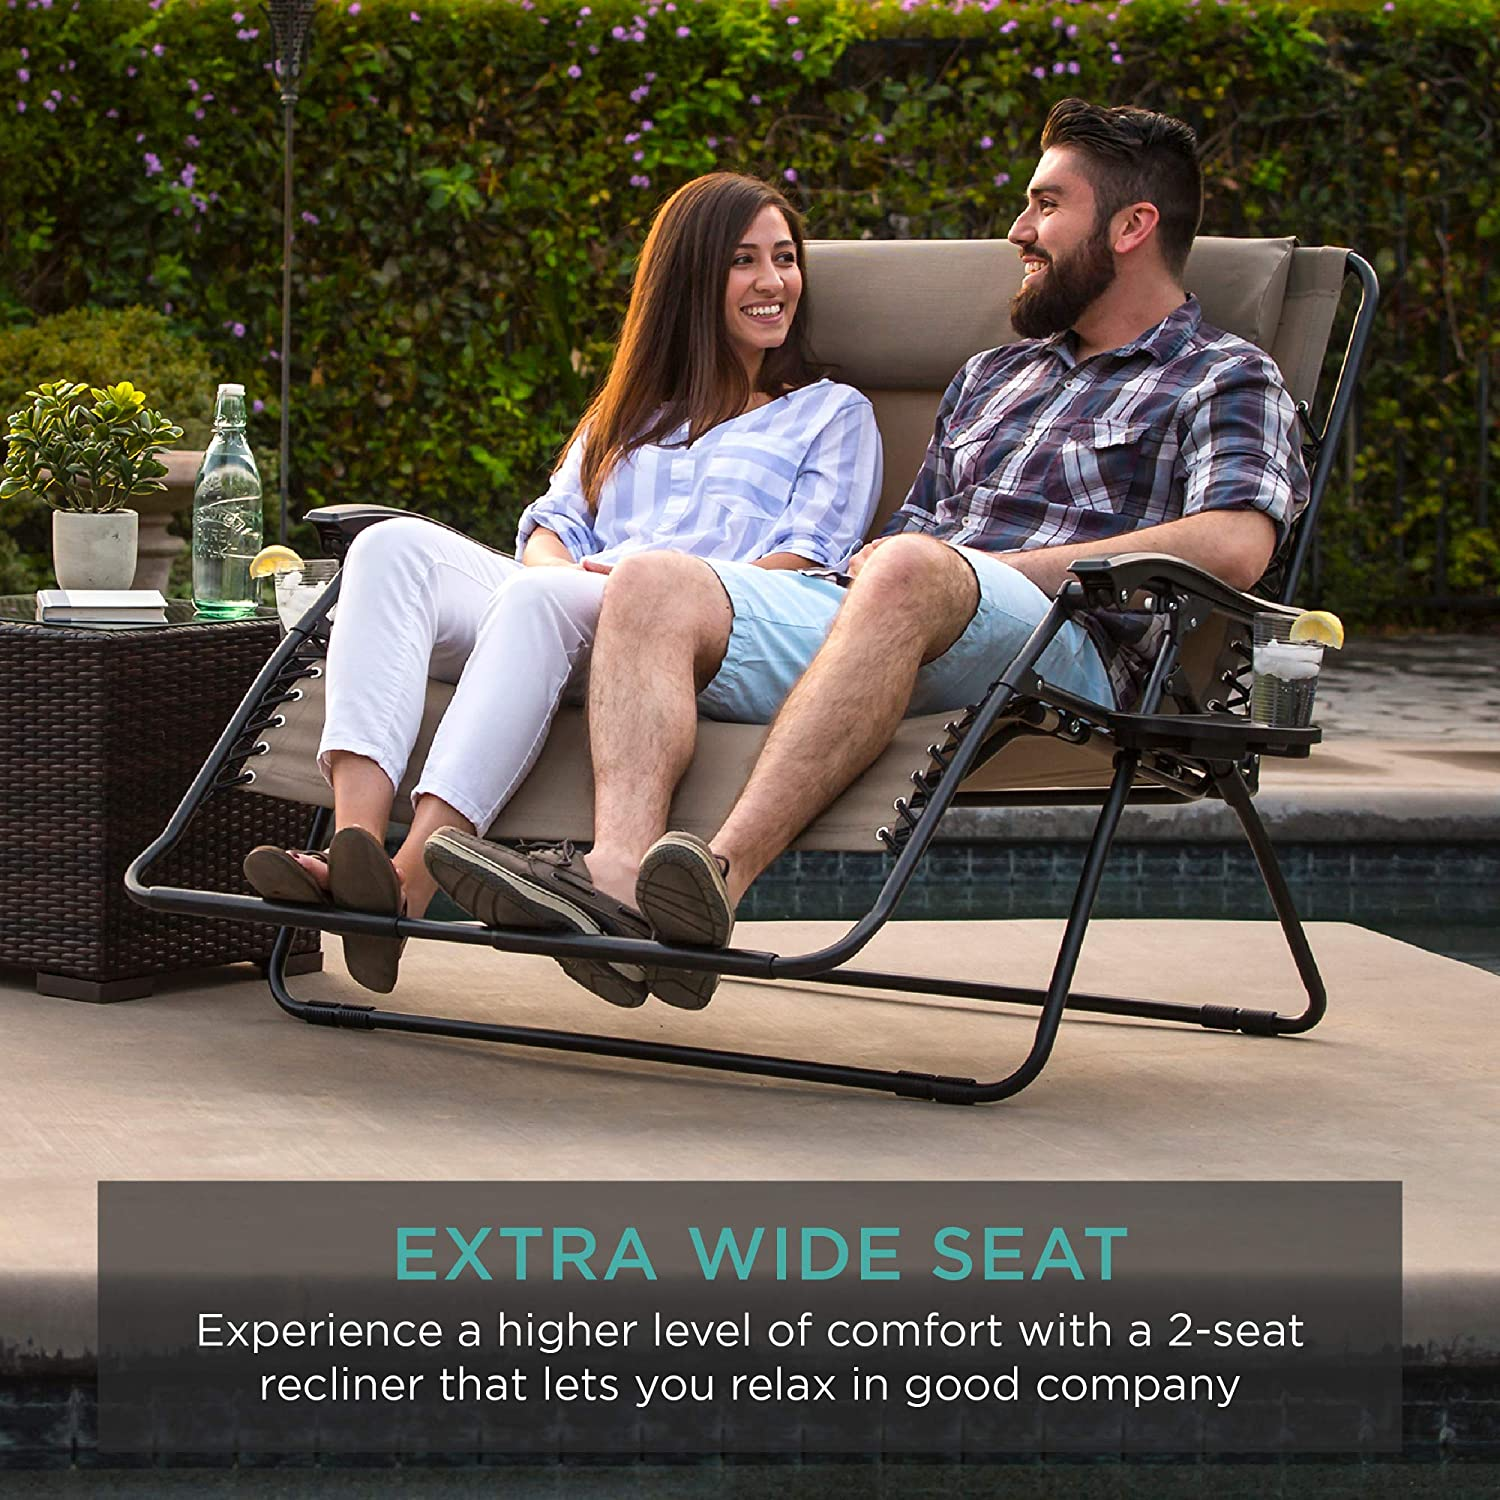 2 person double wide adjustable folding steel mesh zero gravity lounge recliner chair for patio lawn balcony backyard beach outdoor sports w cup